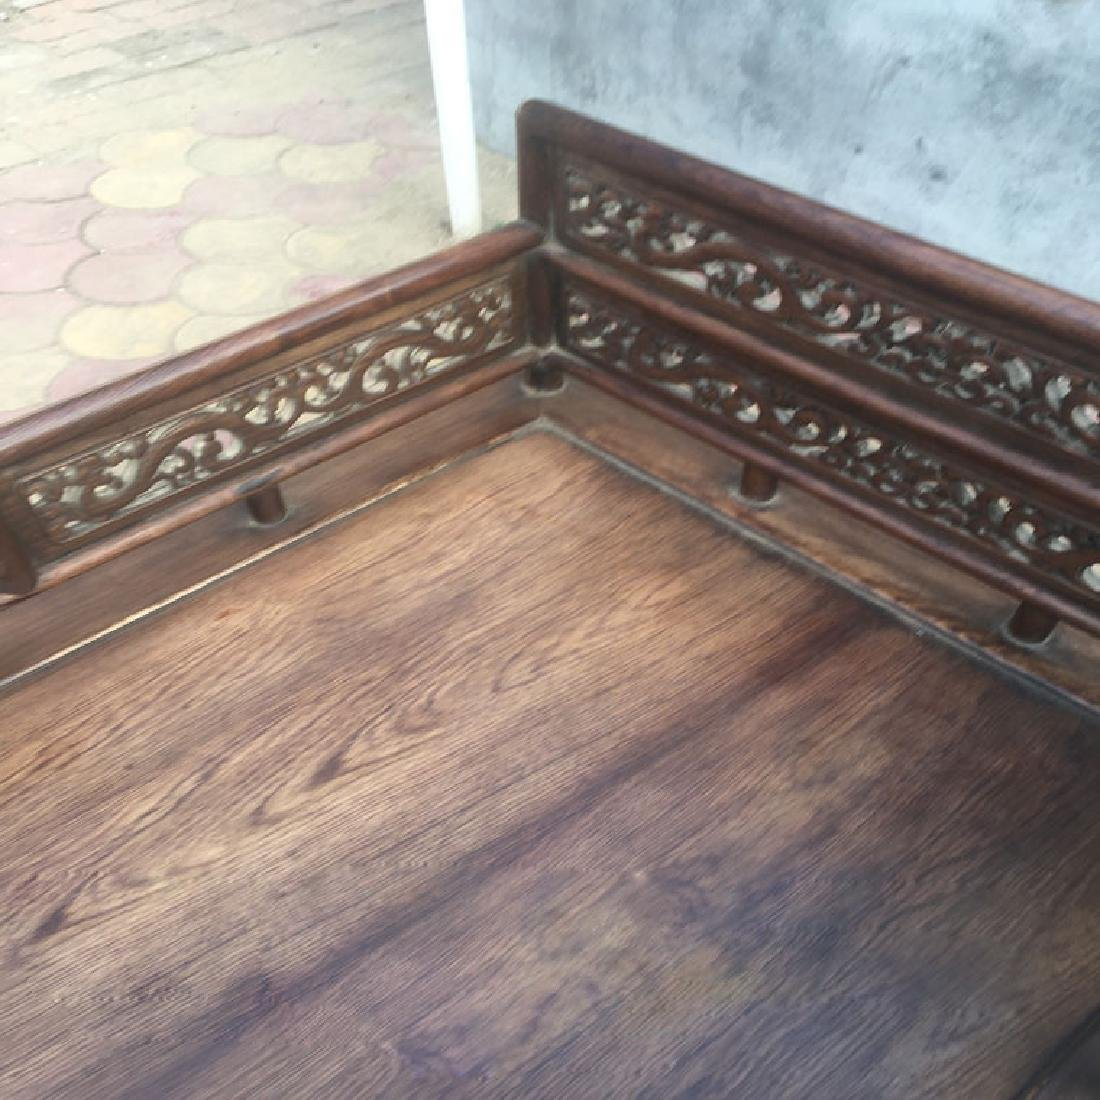 CHINESE QING DYNASTY HUANGHUALI LUO HAN BED SLEEPING - 3